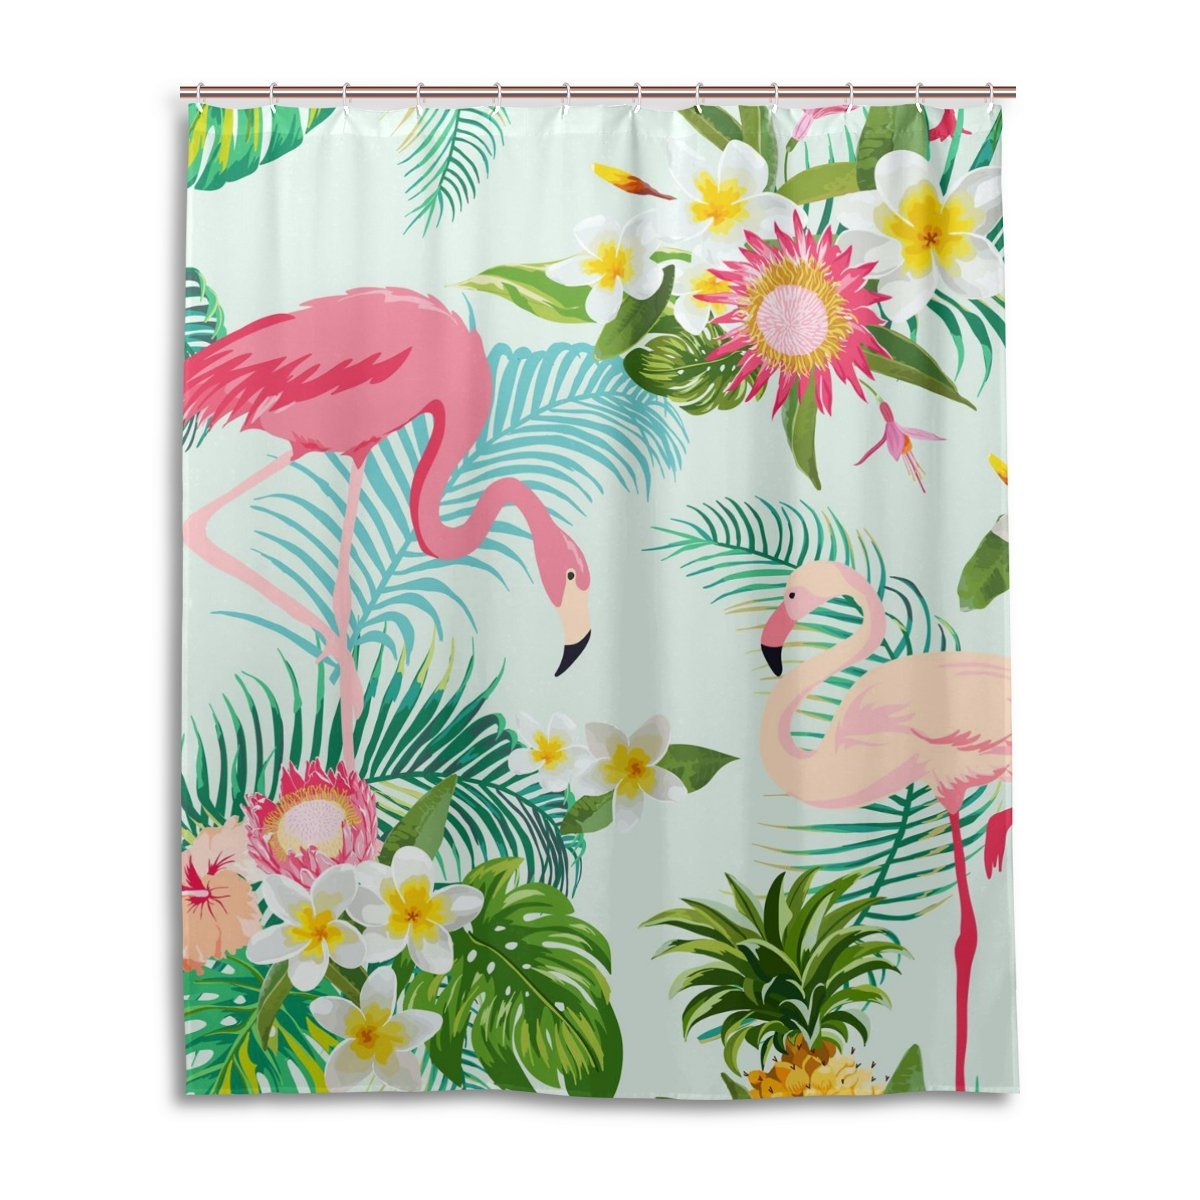 Shower Curtain Leaf Flower Flamingos Pattern Print 100% Polyester Fabric Shower Curtain for Home Bathroom Decorative Shower